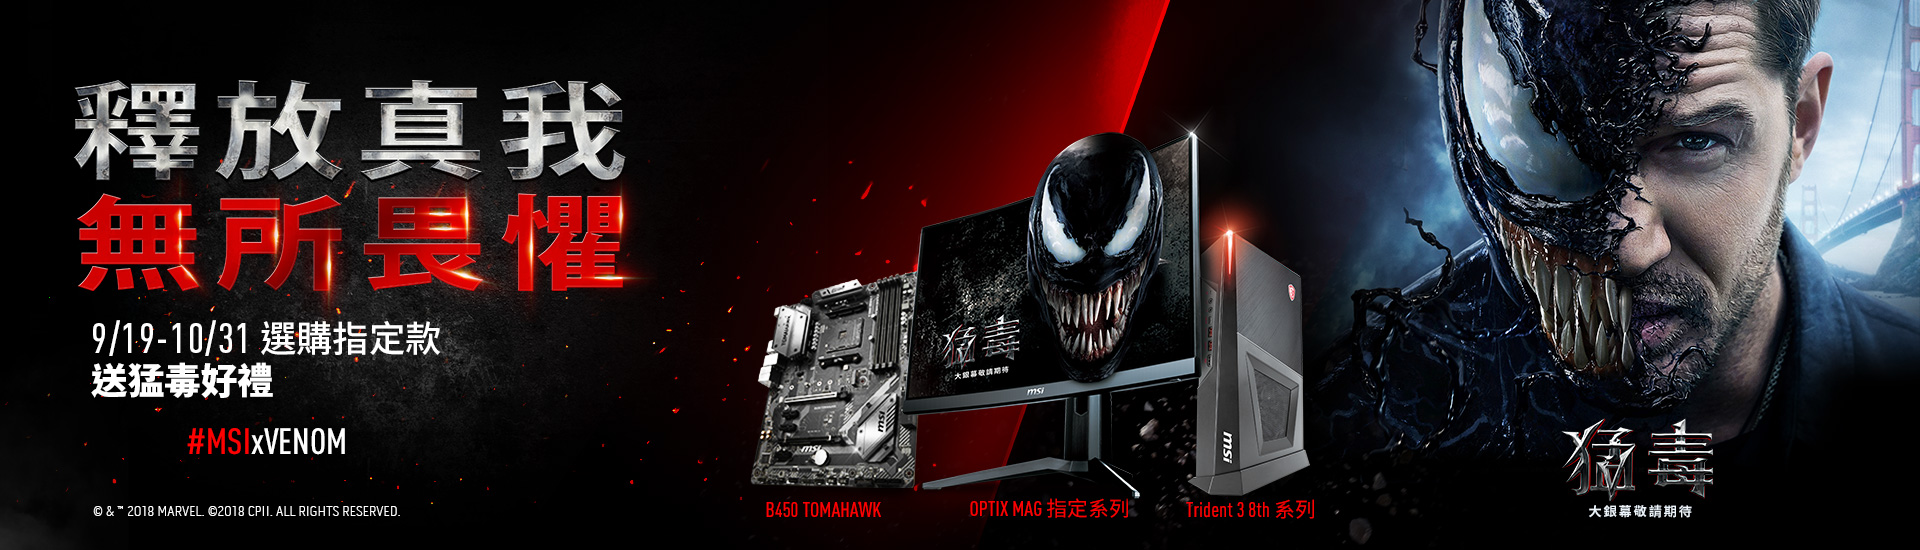 Sony Venom Co-marketing Campaign